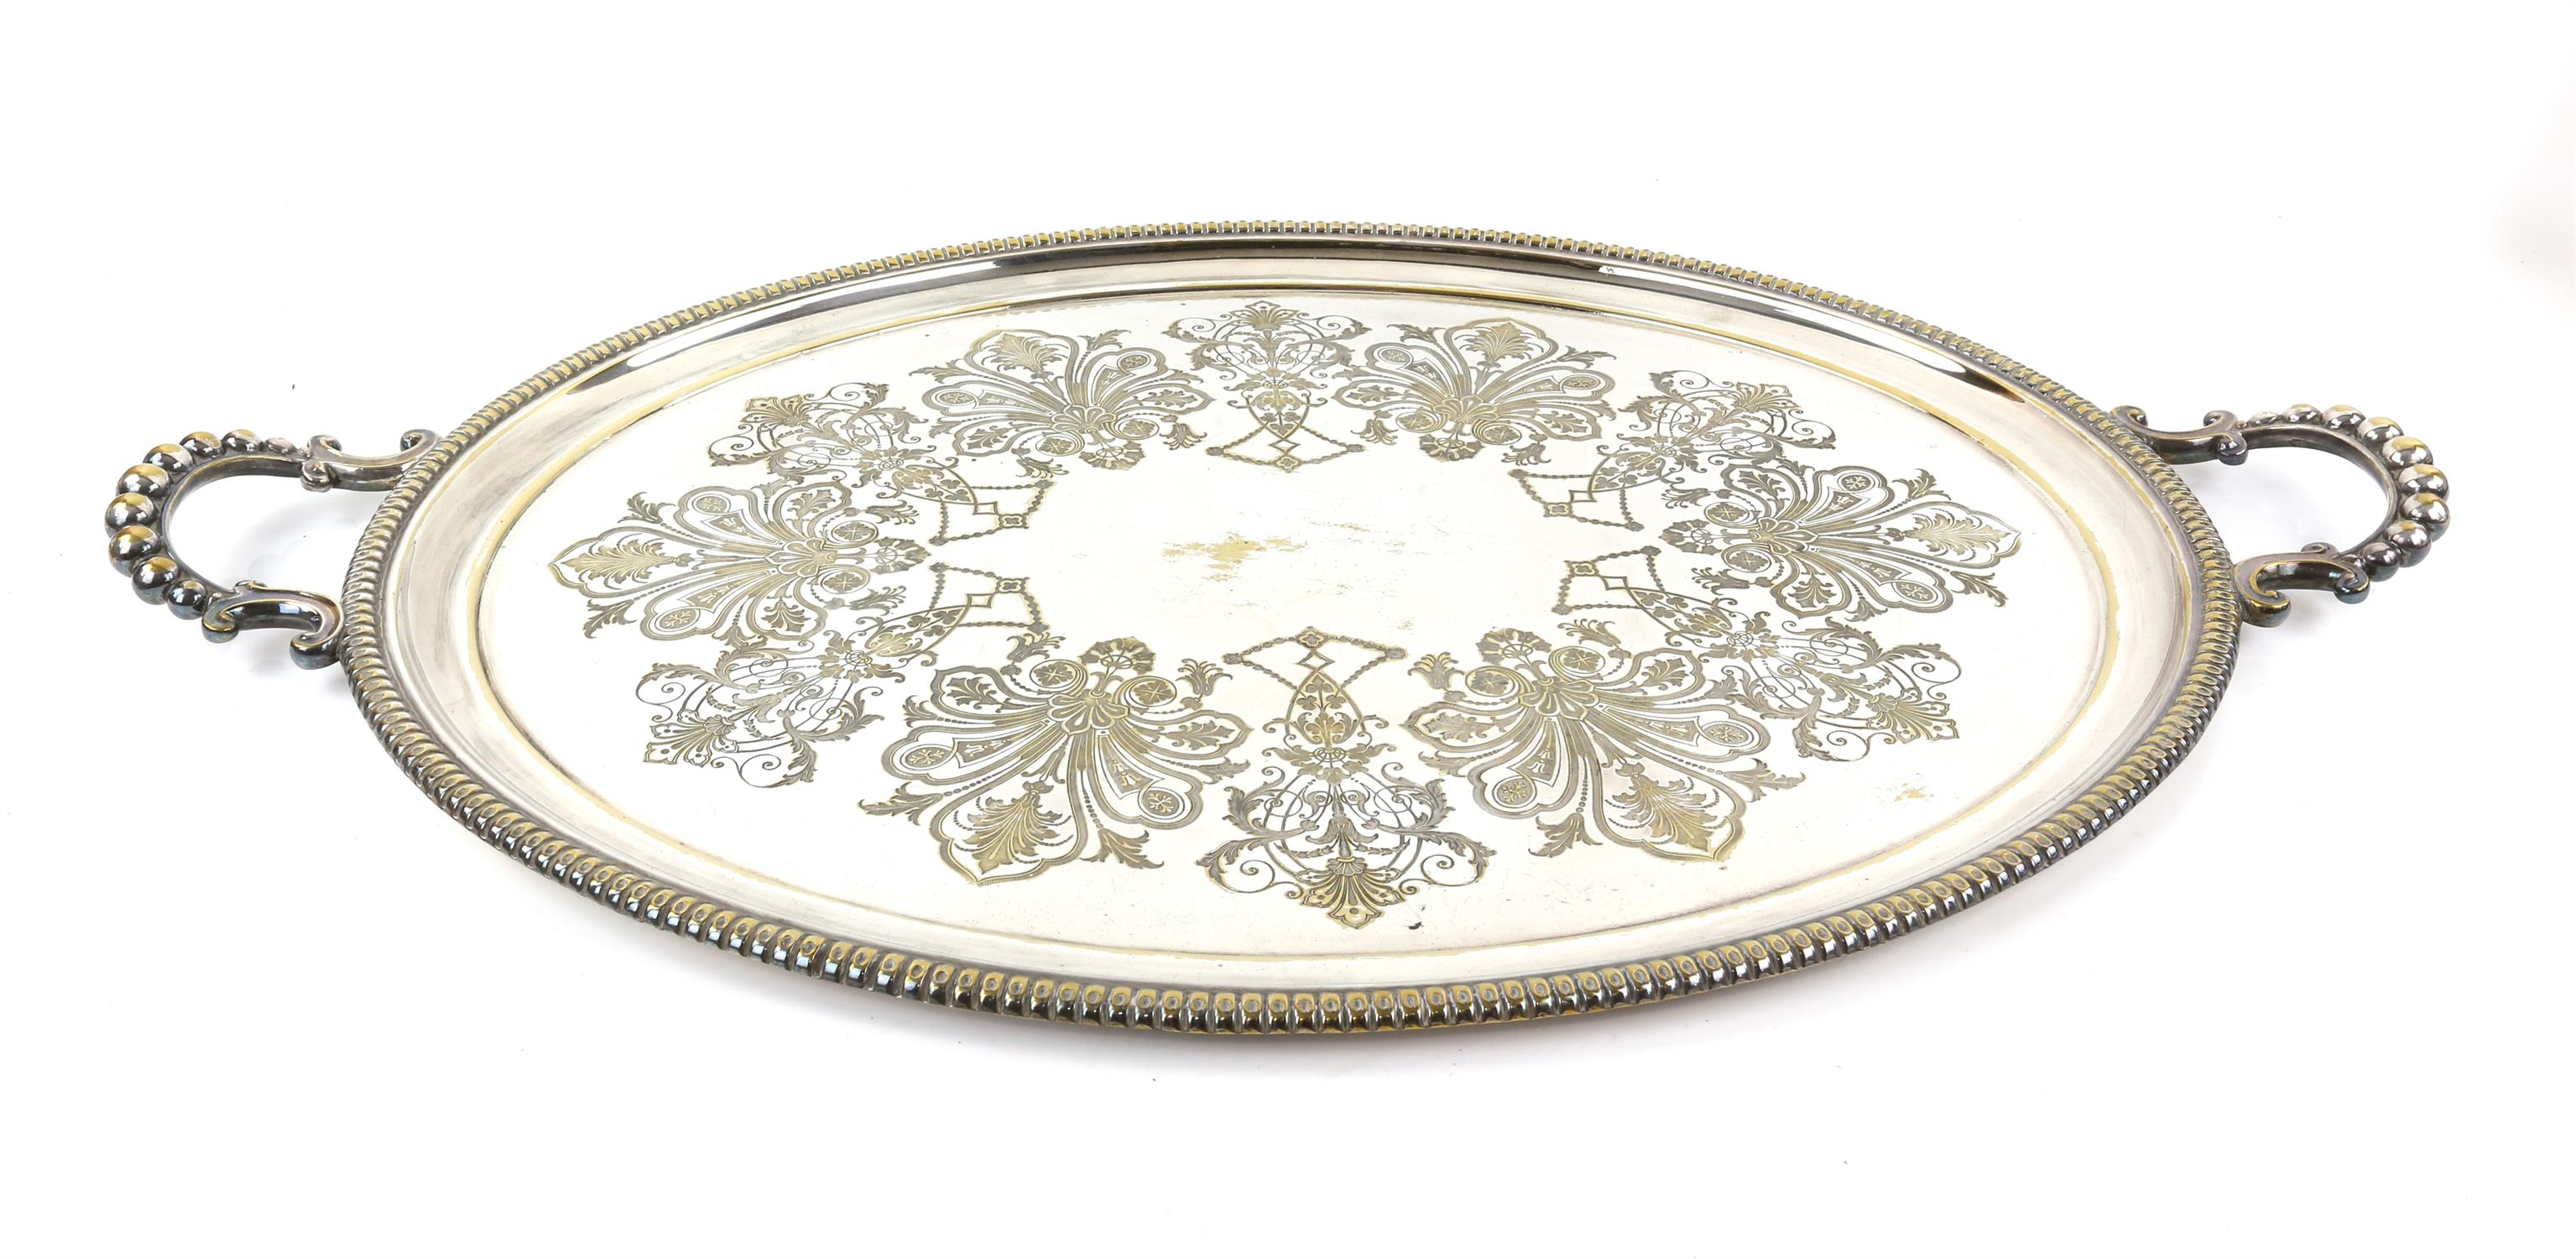 Silver plated twin-handled tray with beaded border, 77cm wide, pair of bottle holders, - Image 2 of 5